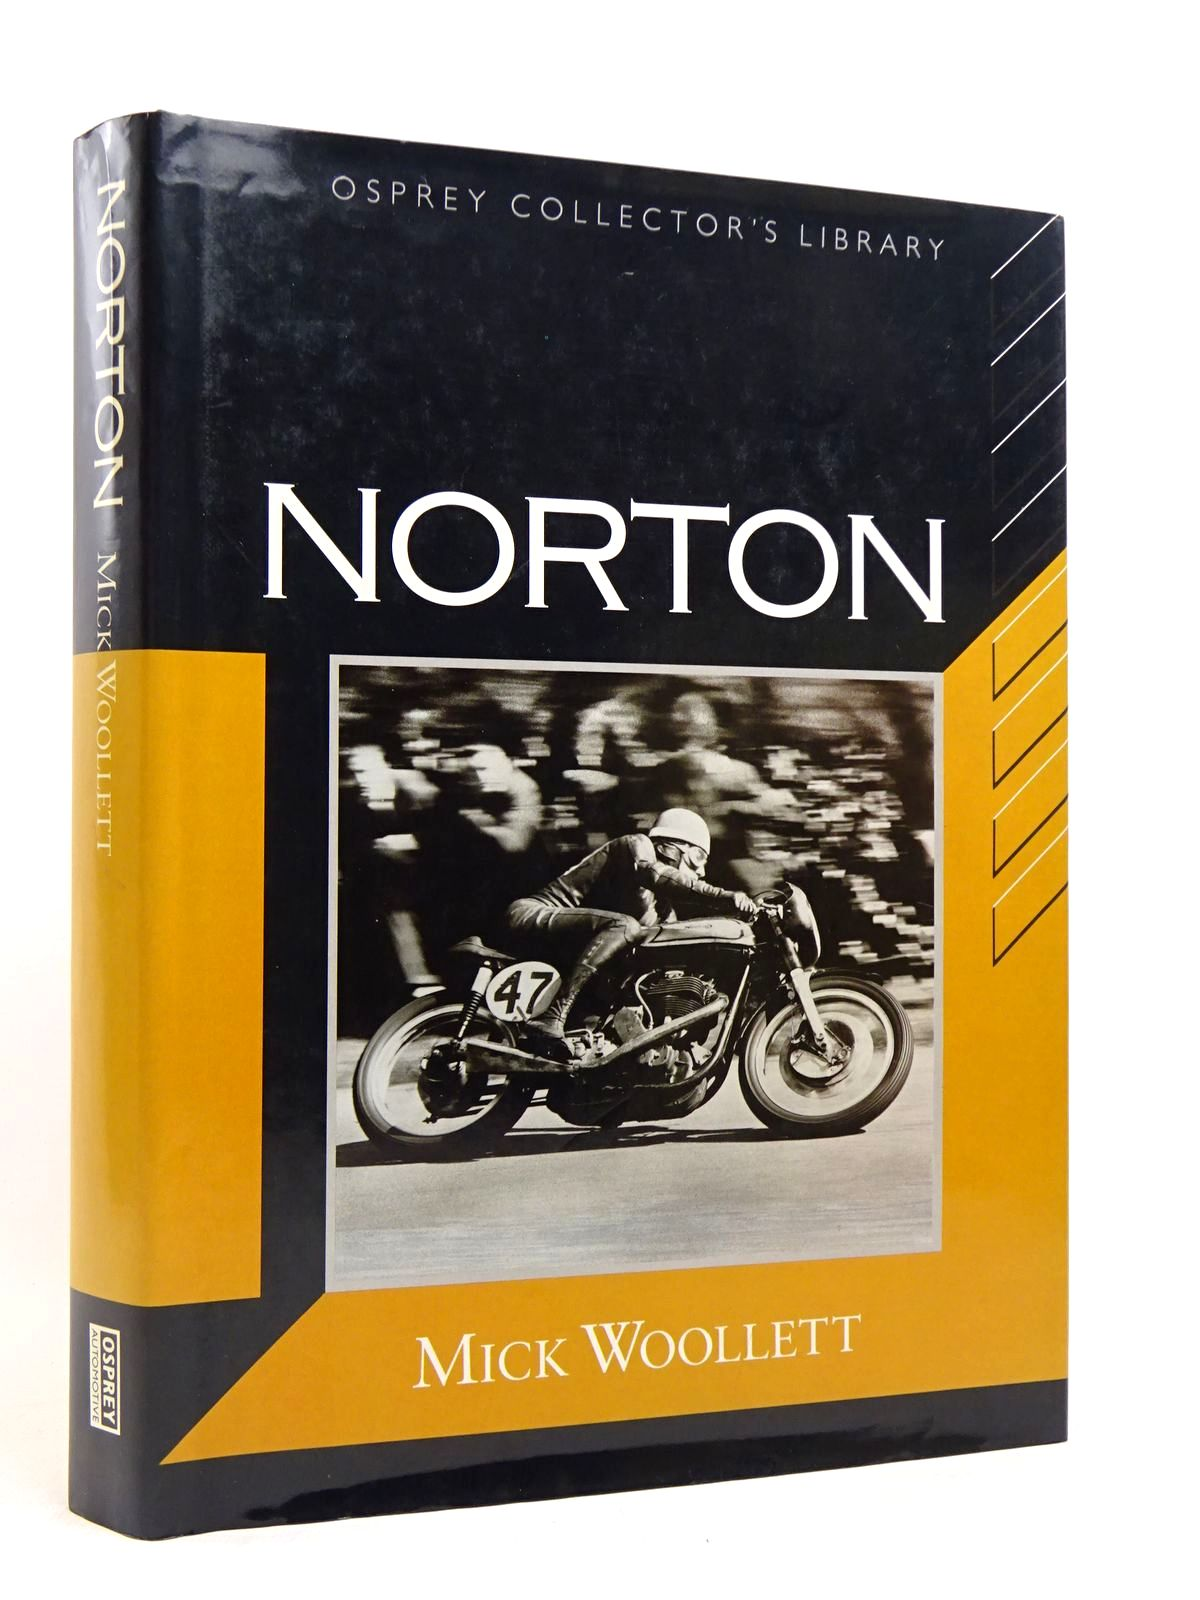 Photo of NORTON (OSPREY COLLECTOR'S LIBRARY) written by Woollett, Mick published by Osprey Automotive (STOCK CODE: 1817785)  for sale by Stella & Rose's Books